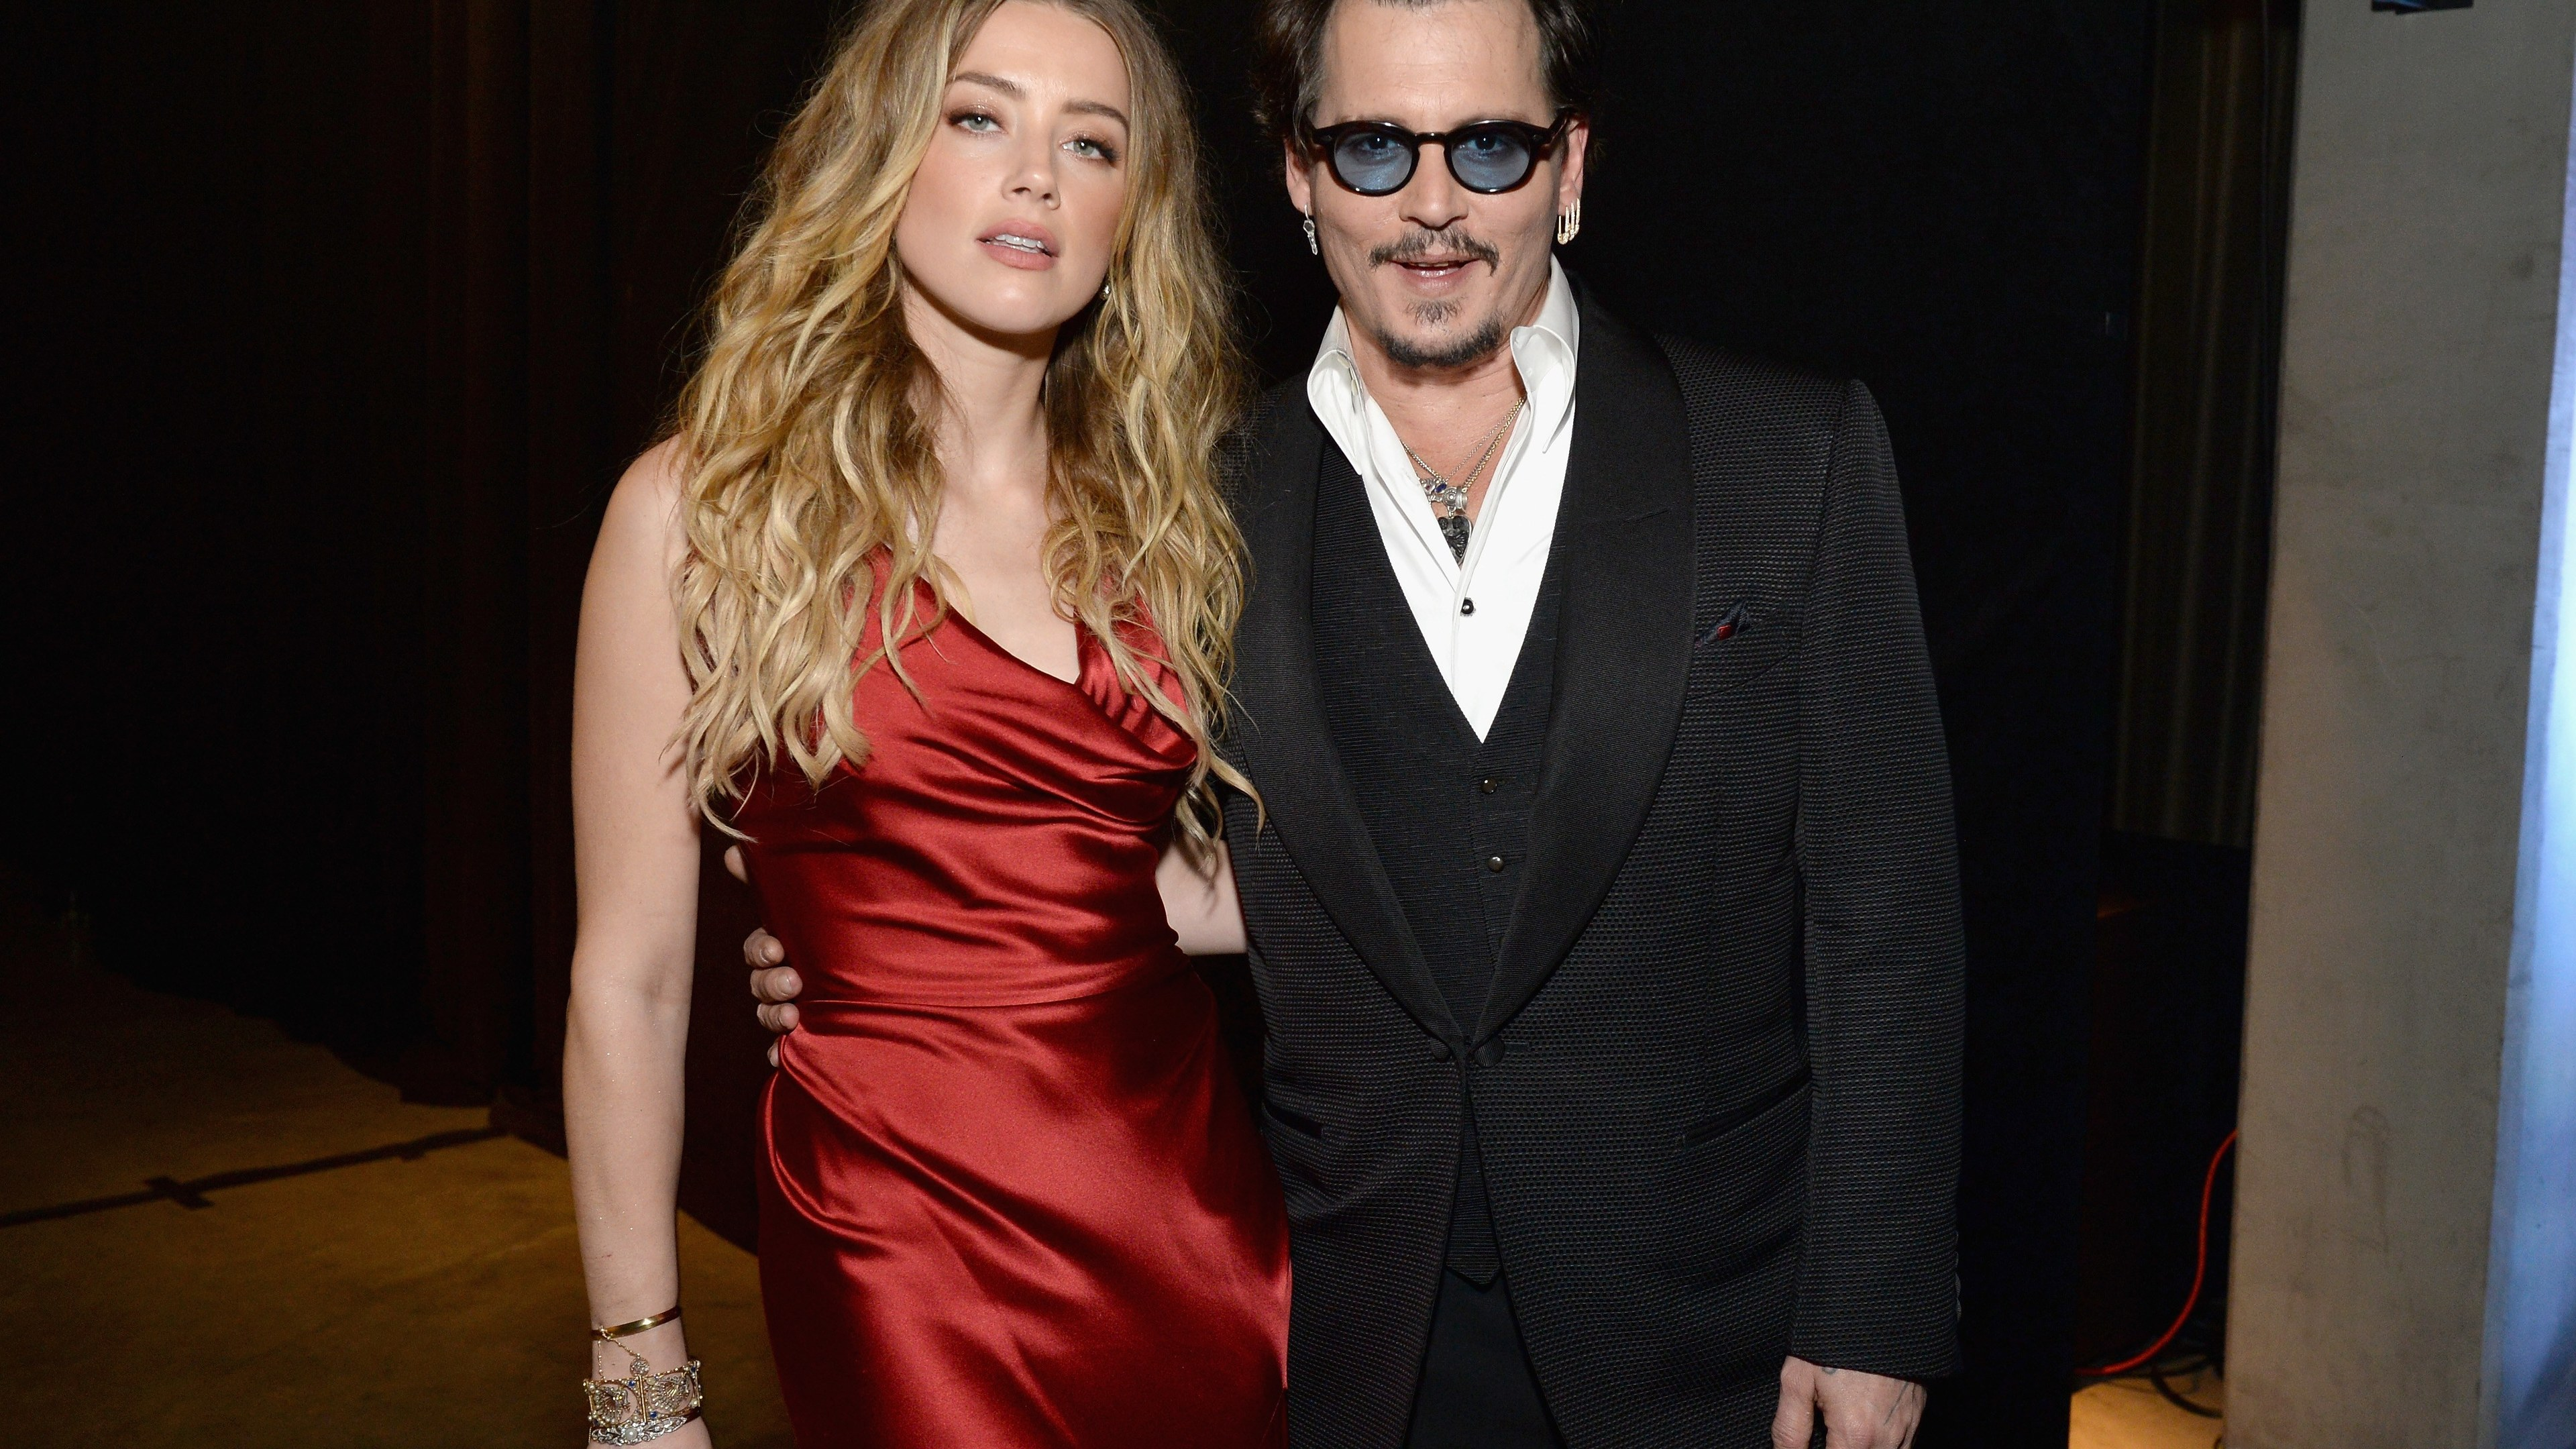 johnny depp and amber heard 1536856996 - Johnny Depp And Amber Heard - johnny depp wallpapers, celebrities wallpapers, amber heard wallpapers